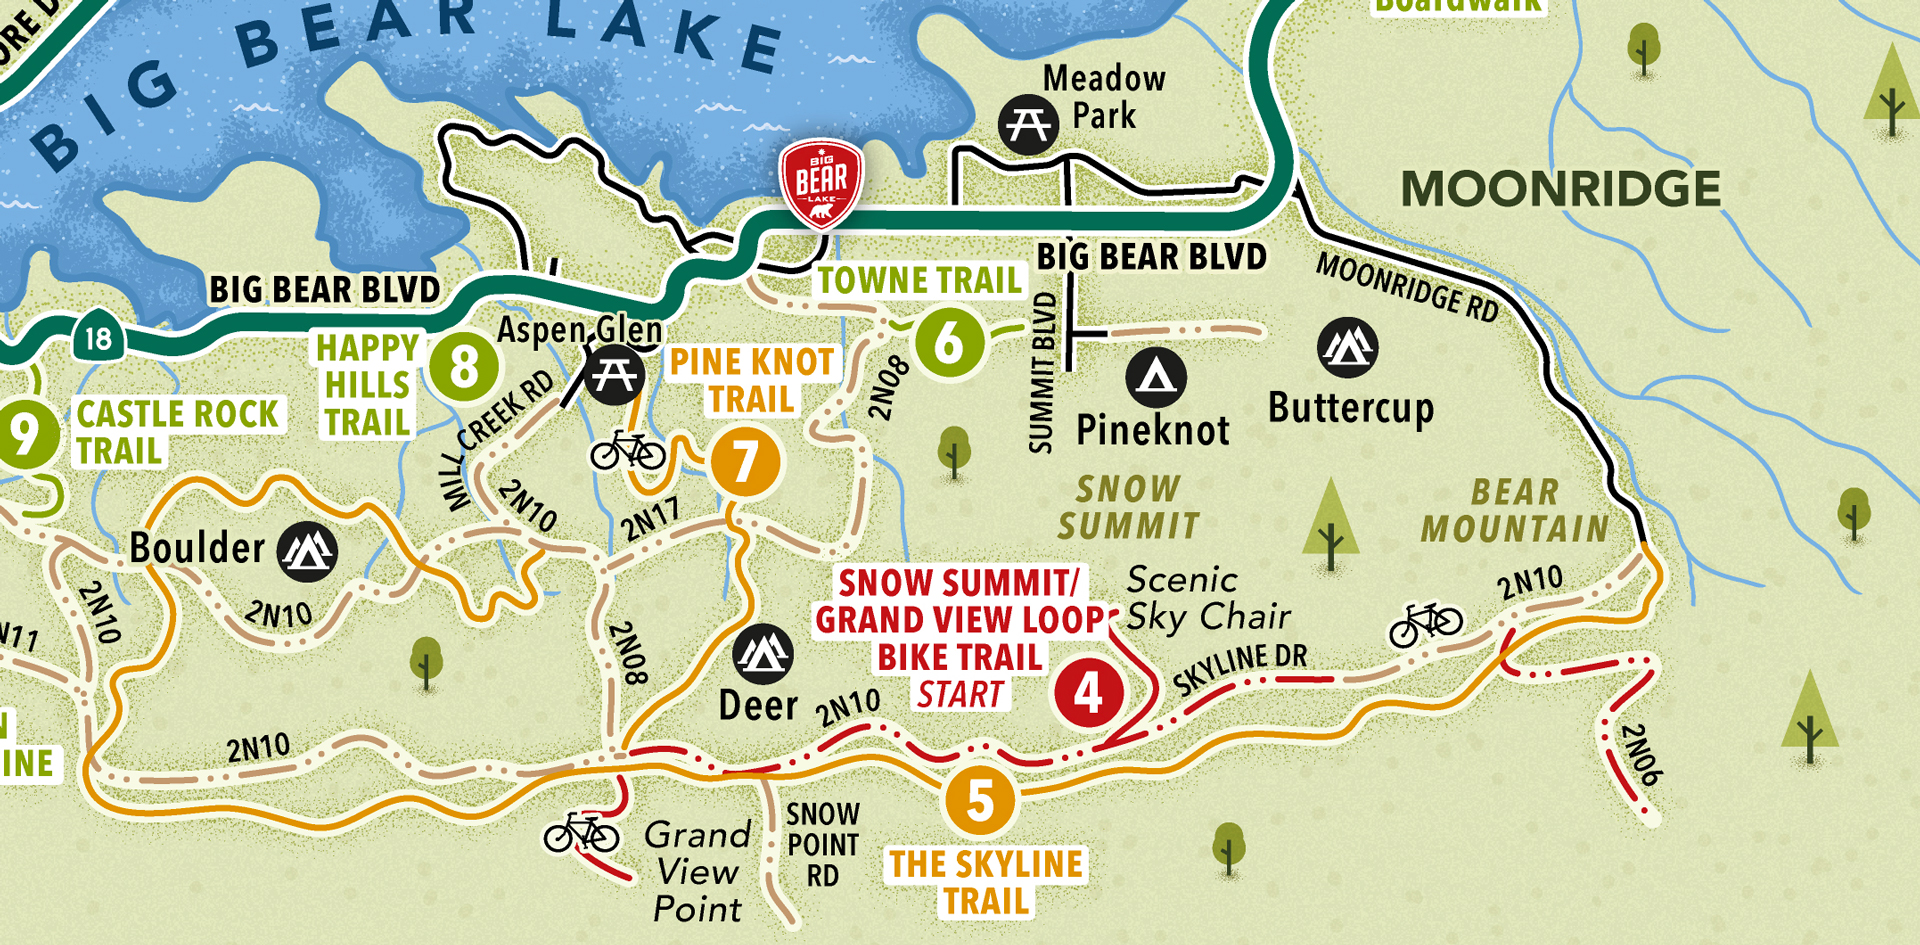 Hiking and biking map close-up